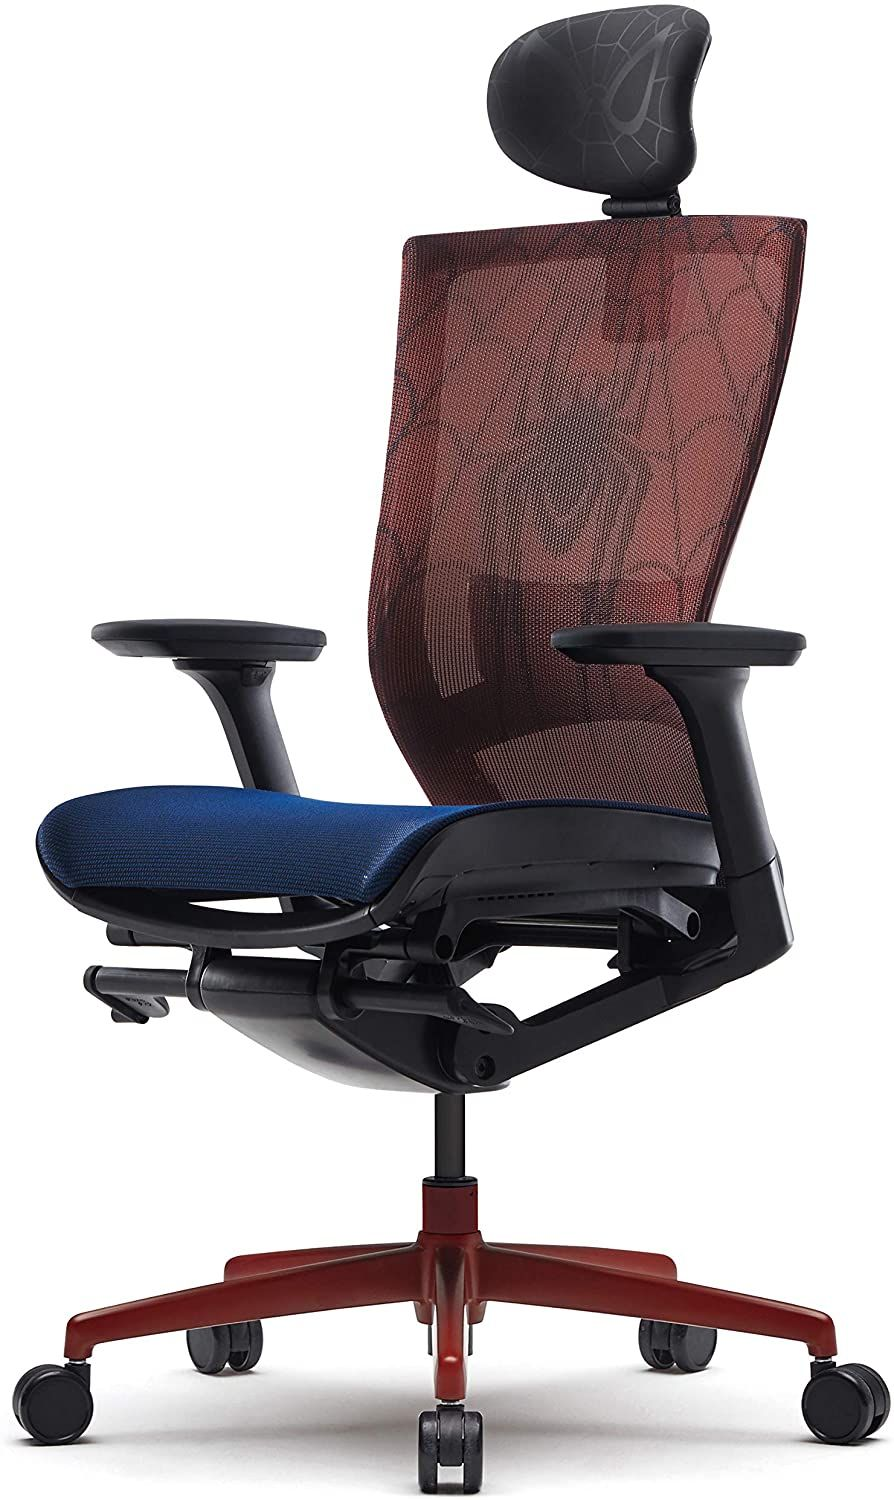 Sidiz T50 Air Chair Marvel Spider Man Edition Mesh Seat And Back With Lumbar Support T520hldapcc1 In 2020 Best Office Chair Office Chair Chair